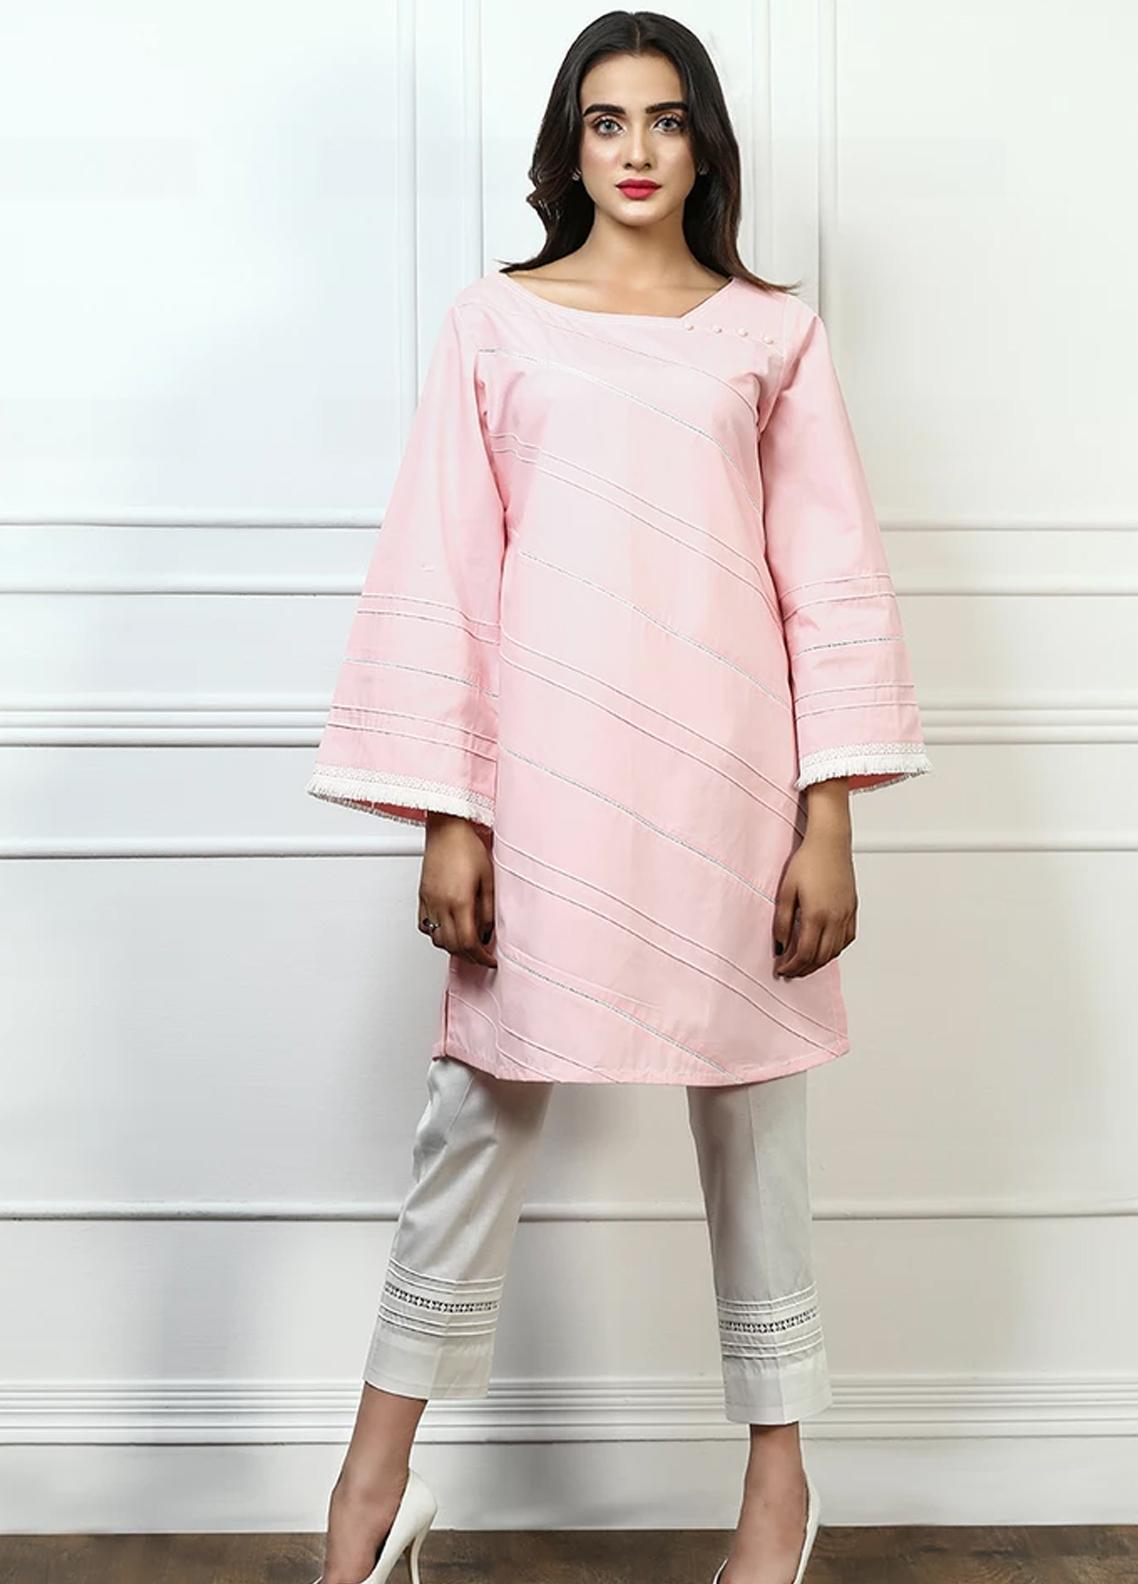 Pulsar Fancy Style Cotton Stitched Kurtis Pink Delicacy